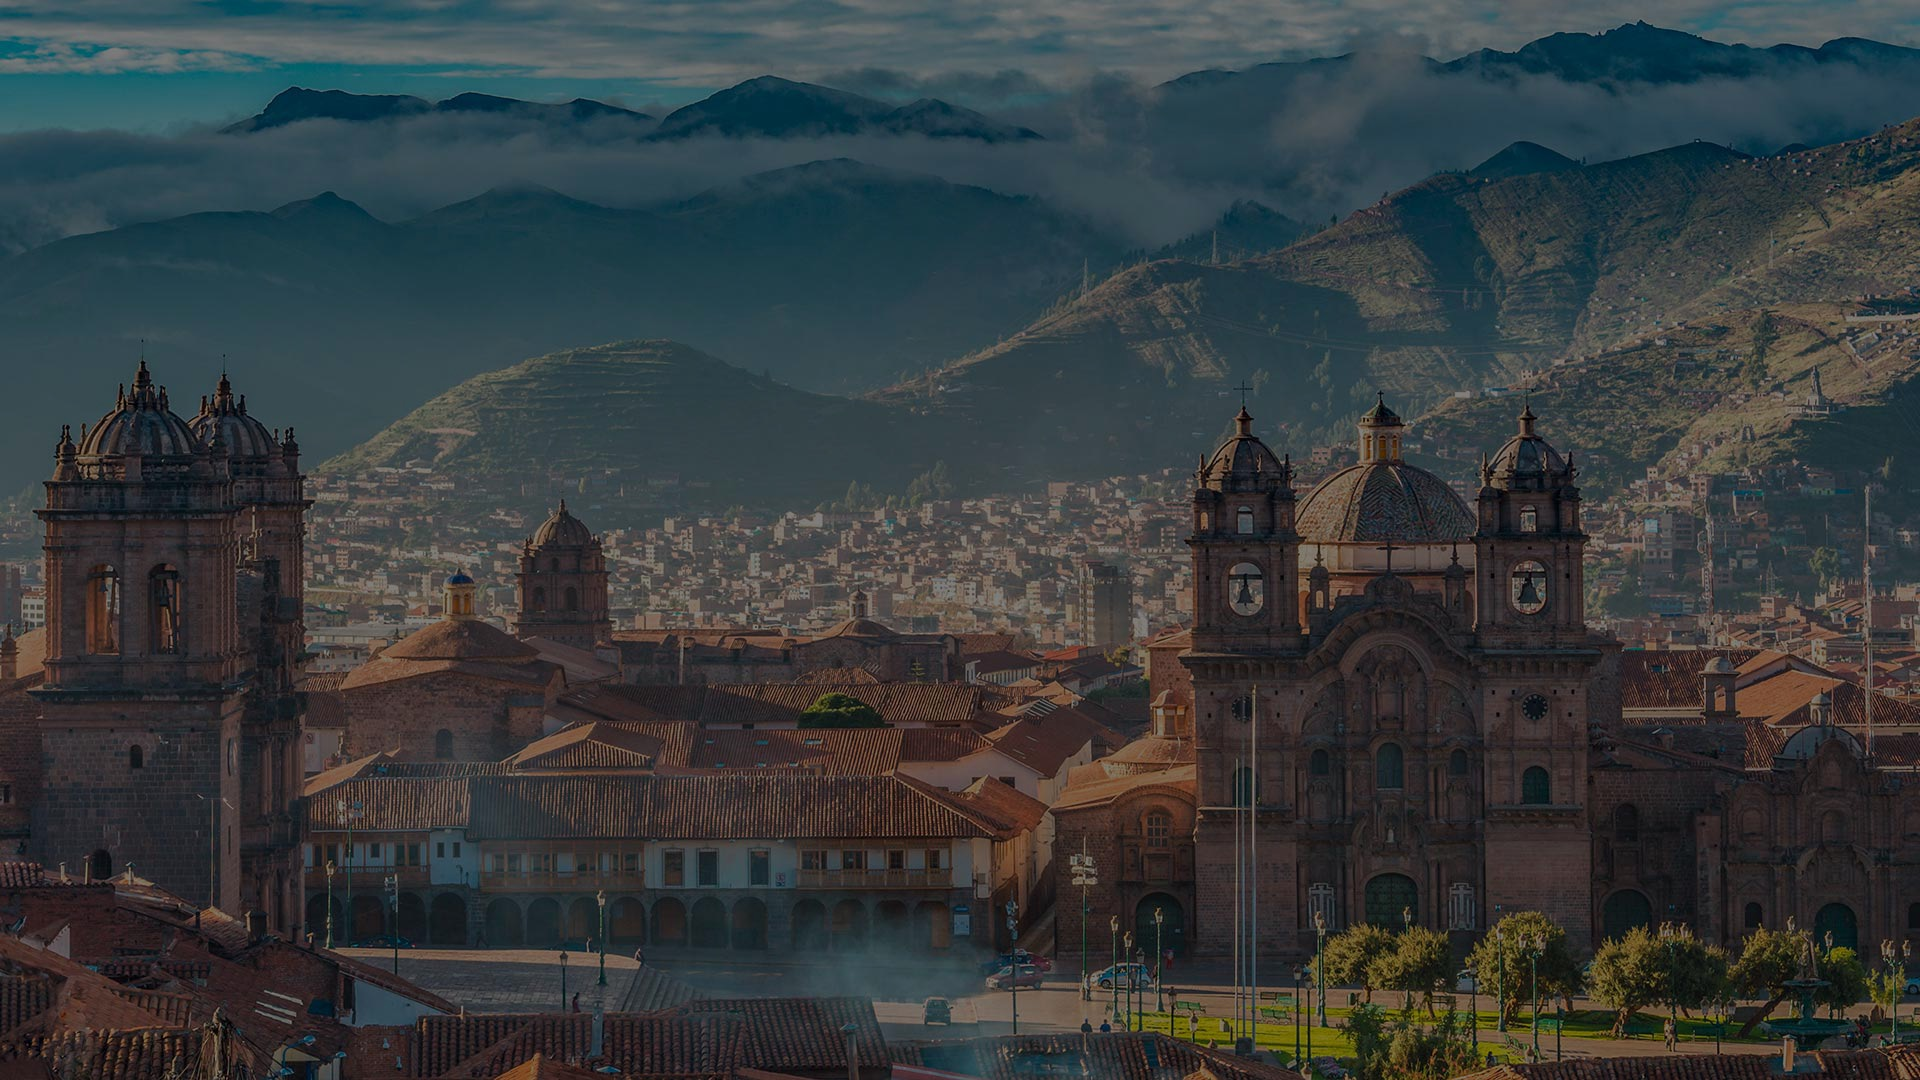 Other Tours in Cusco City